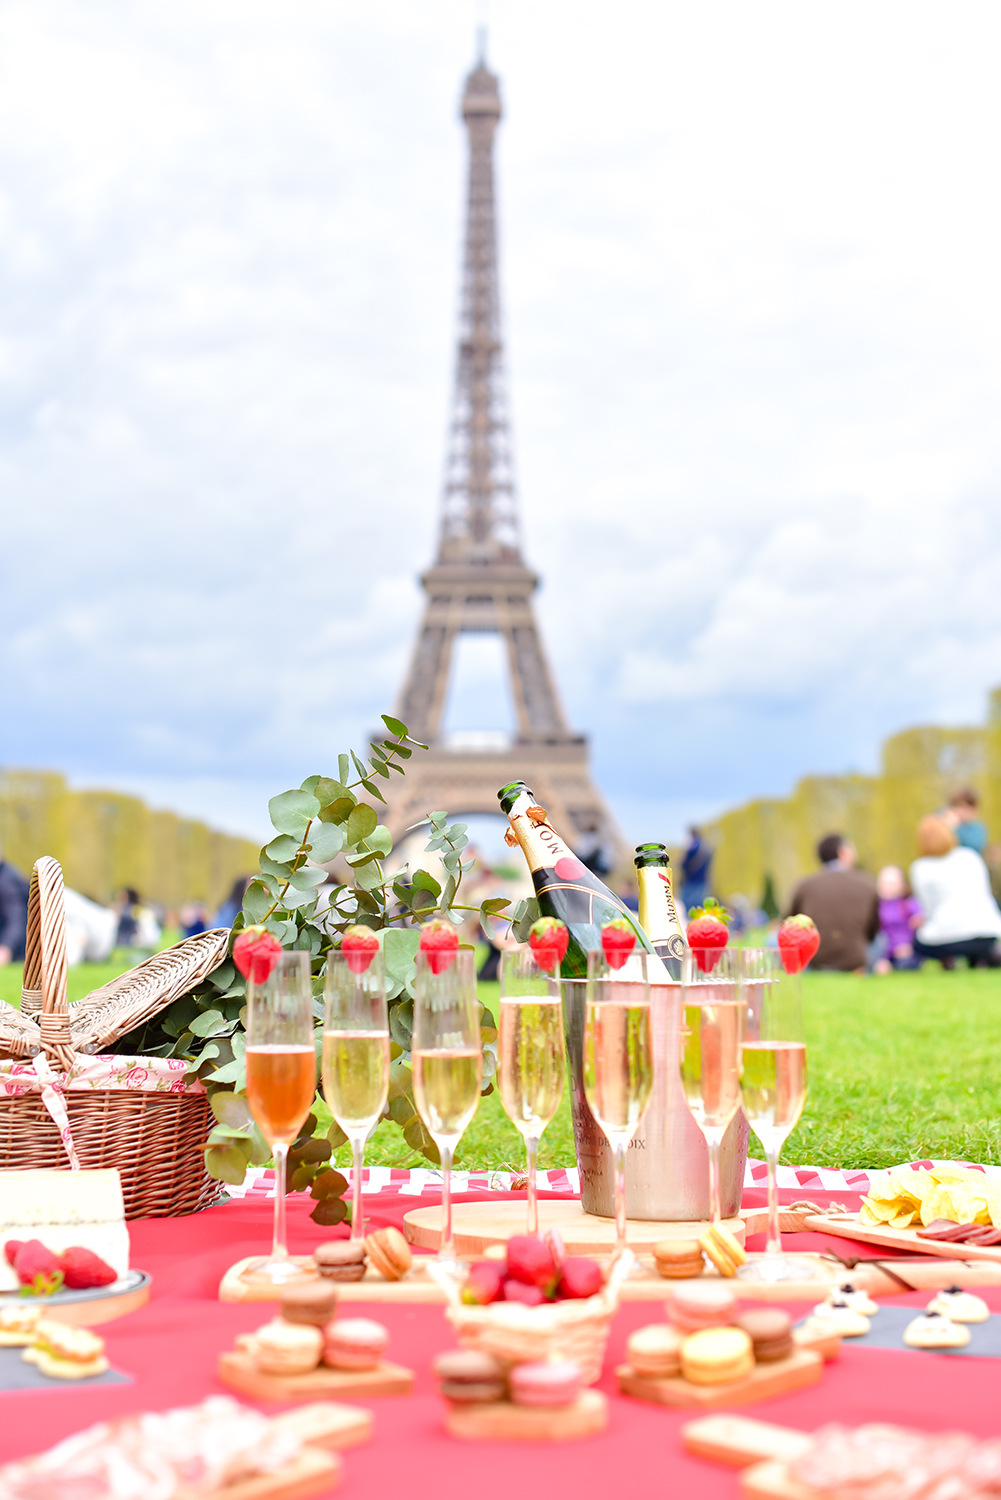 https://www.picnicemparis.com/